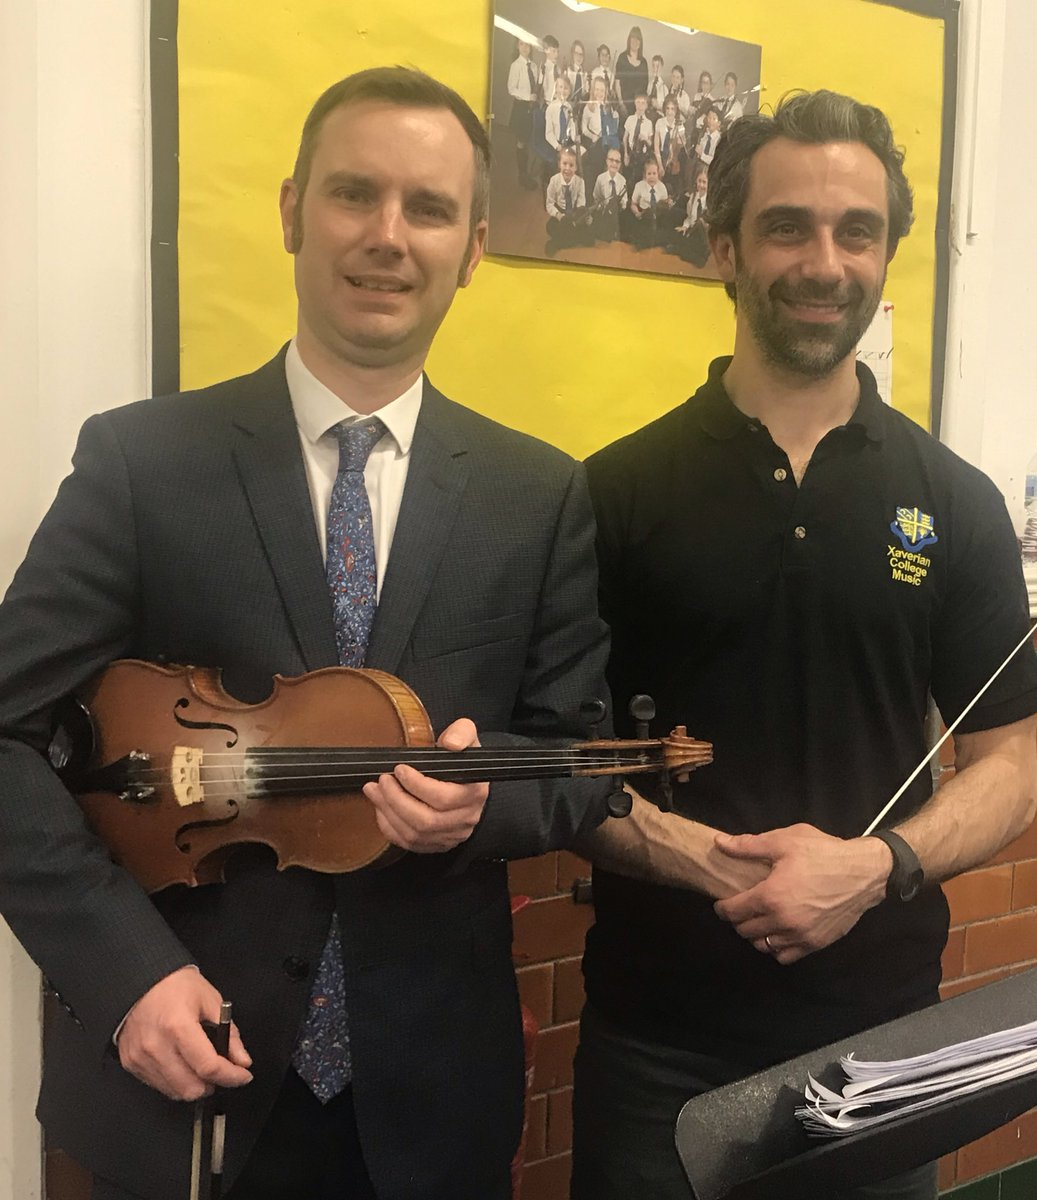 Great to have the super-talented Trafford Mayor @TomWRoss join the violin section of our Philharmonic Orchestra tonight - pictured with conductor Andrew Levendis.   Thank you for your support. See you at our concert on Sunday.   @TraffordCouncil #violin #MusicEducation <br>http://pic.twitter.com/KOmGraweXO